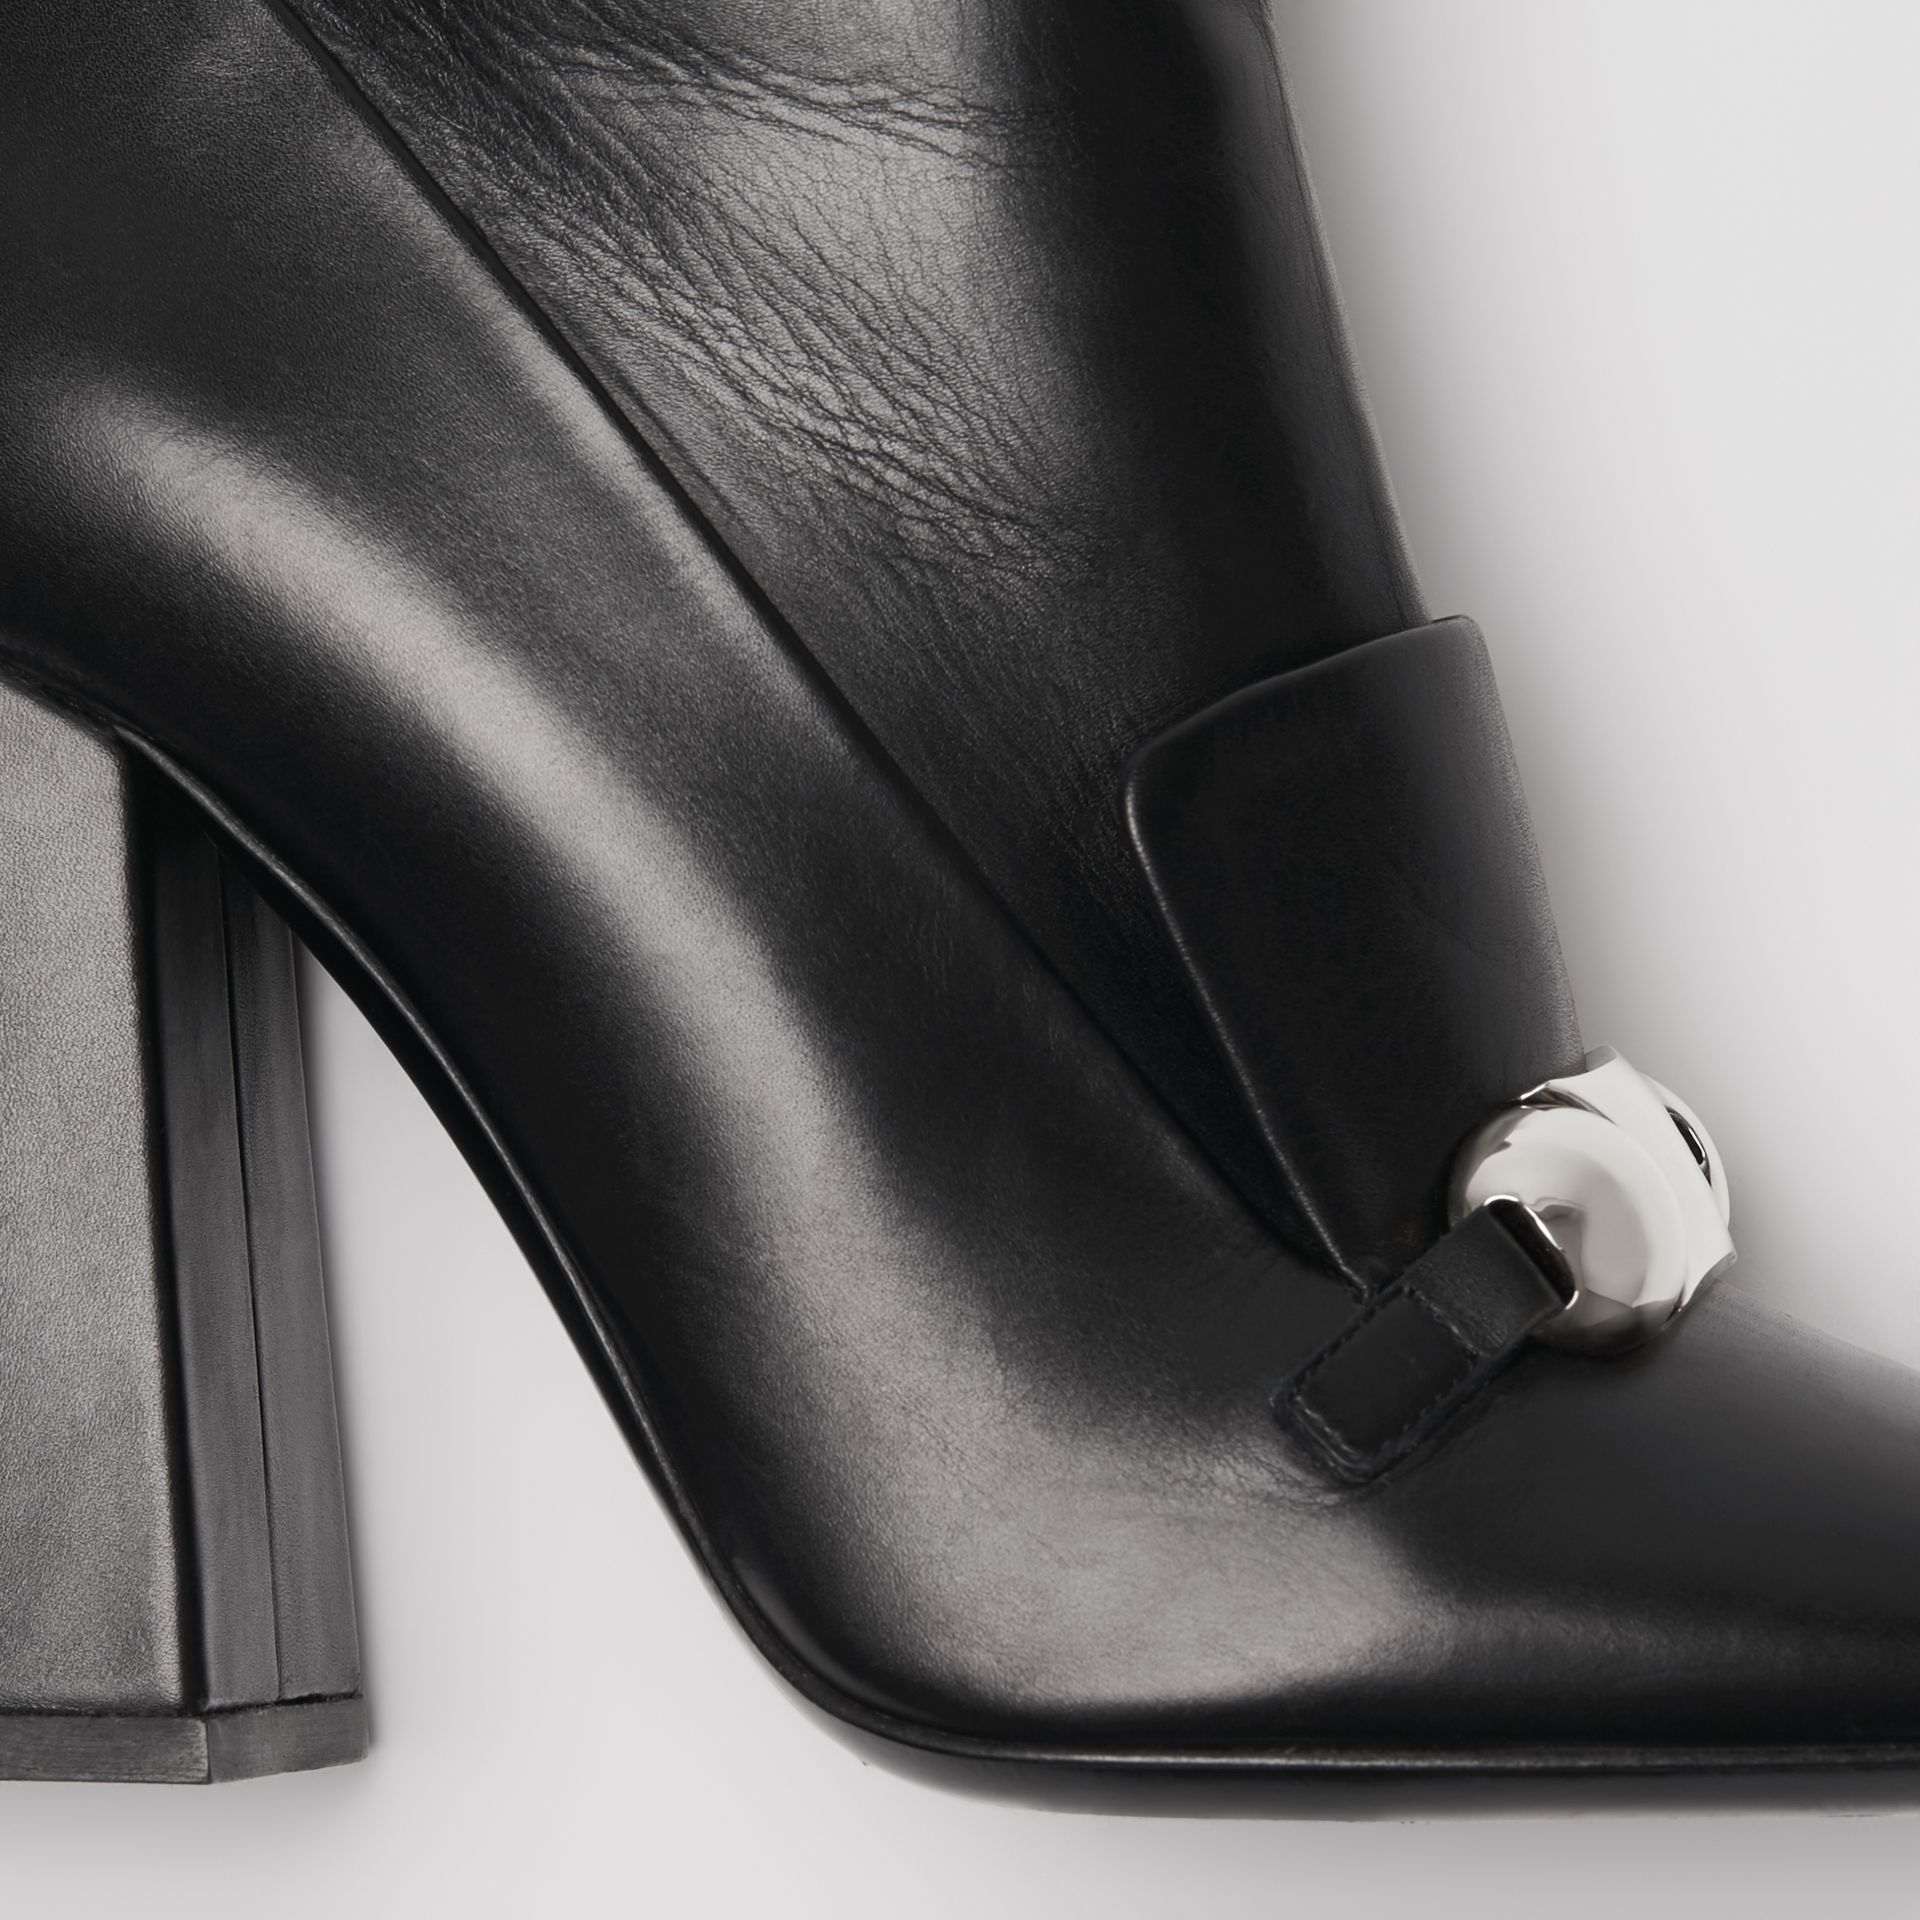 Bottines en cuir avec bride cloutée (Noir) - Femme | Burberry Canada - photo de la galerie 1